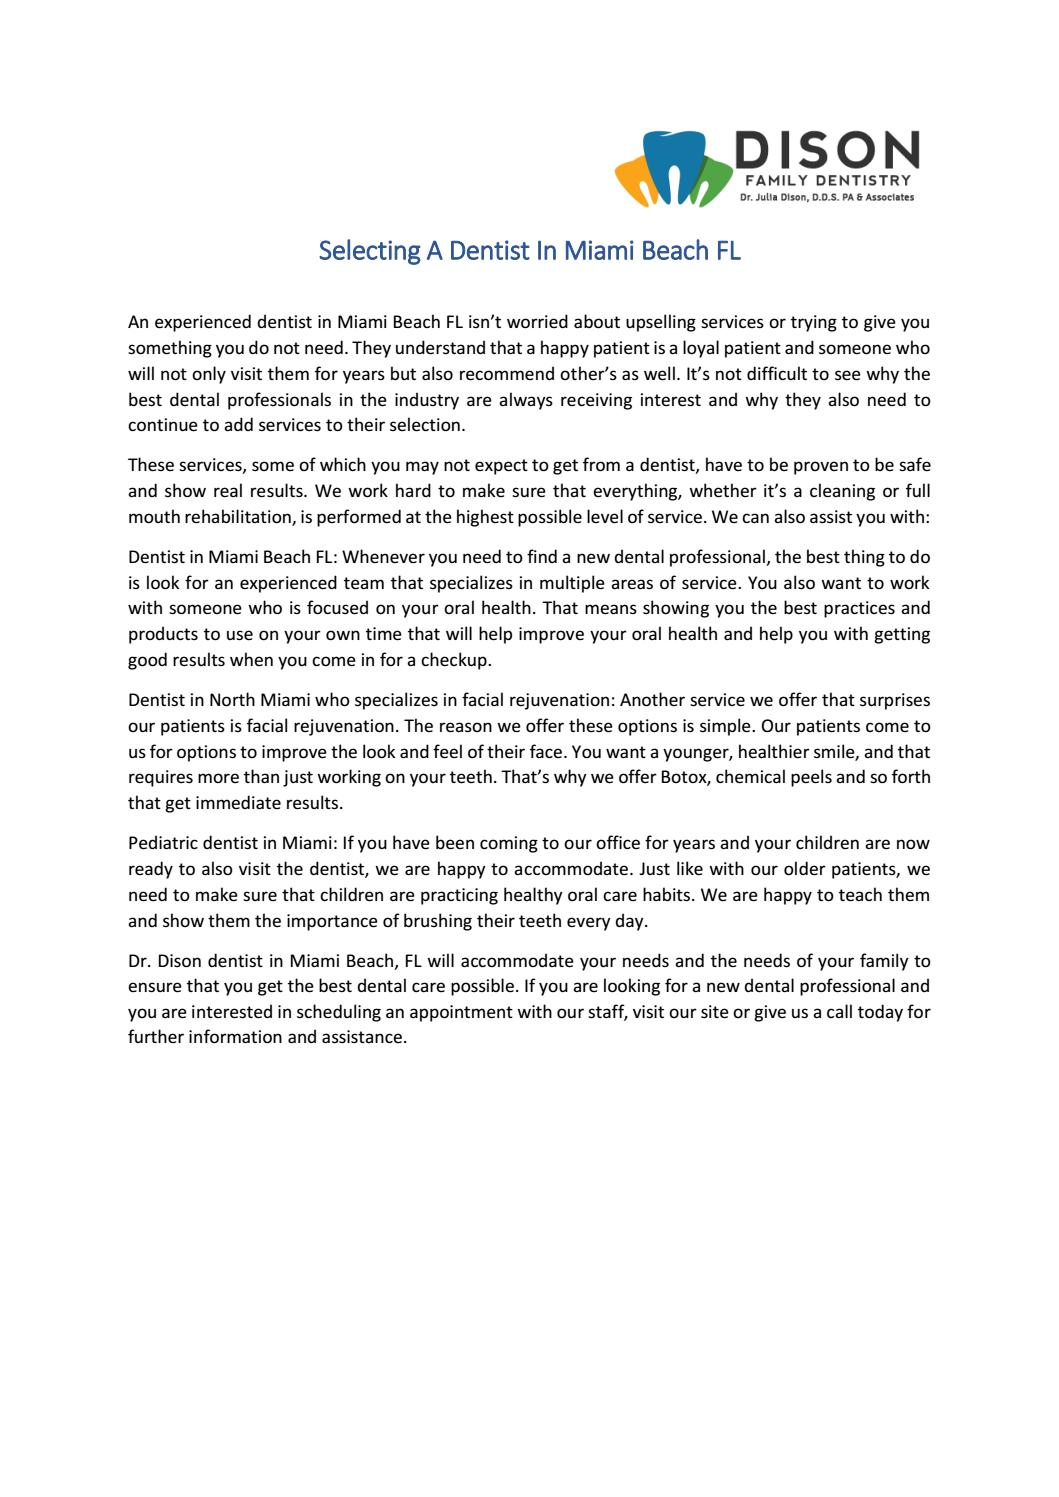 Selecting A Dentist In Miami Beach FL by Dr dison - issuu